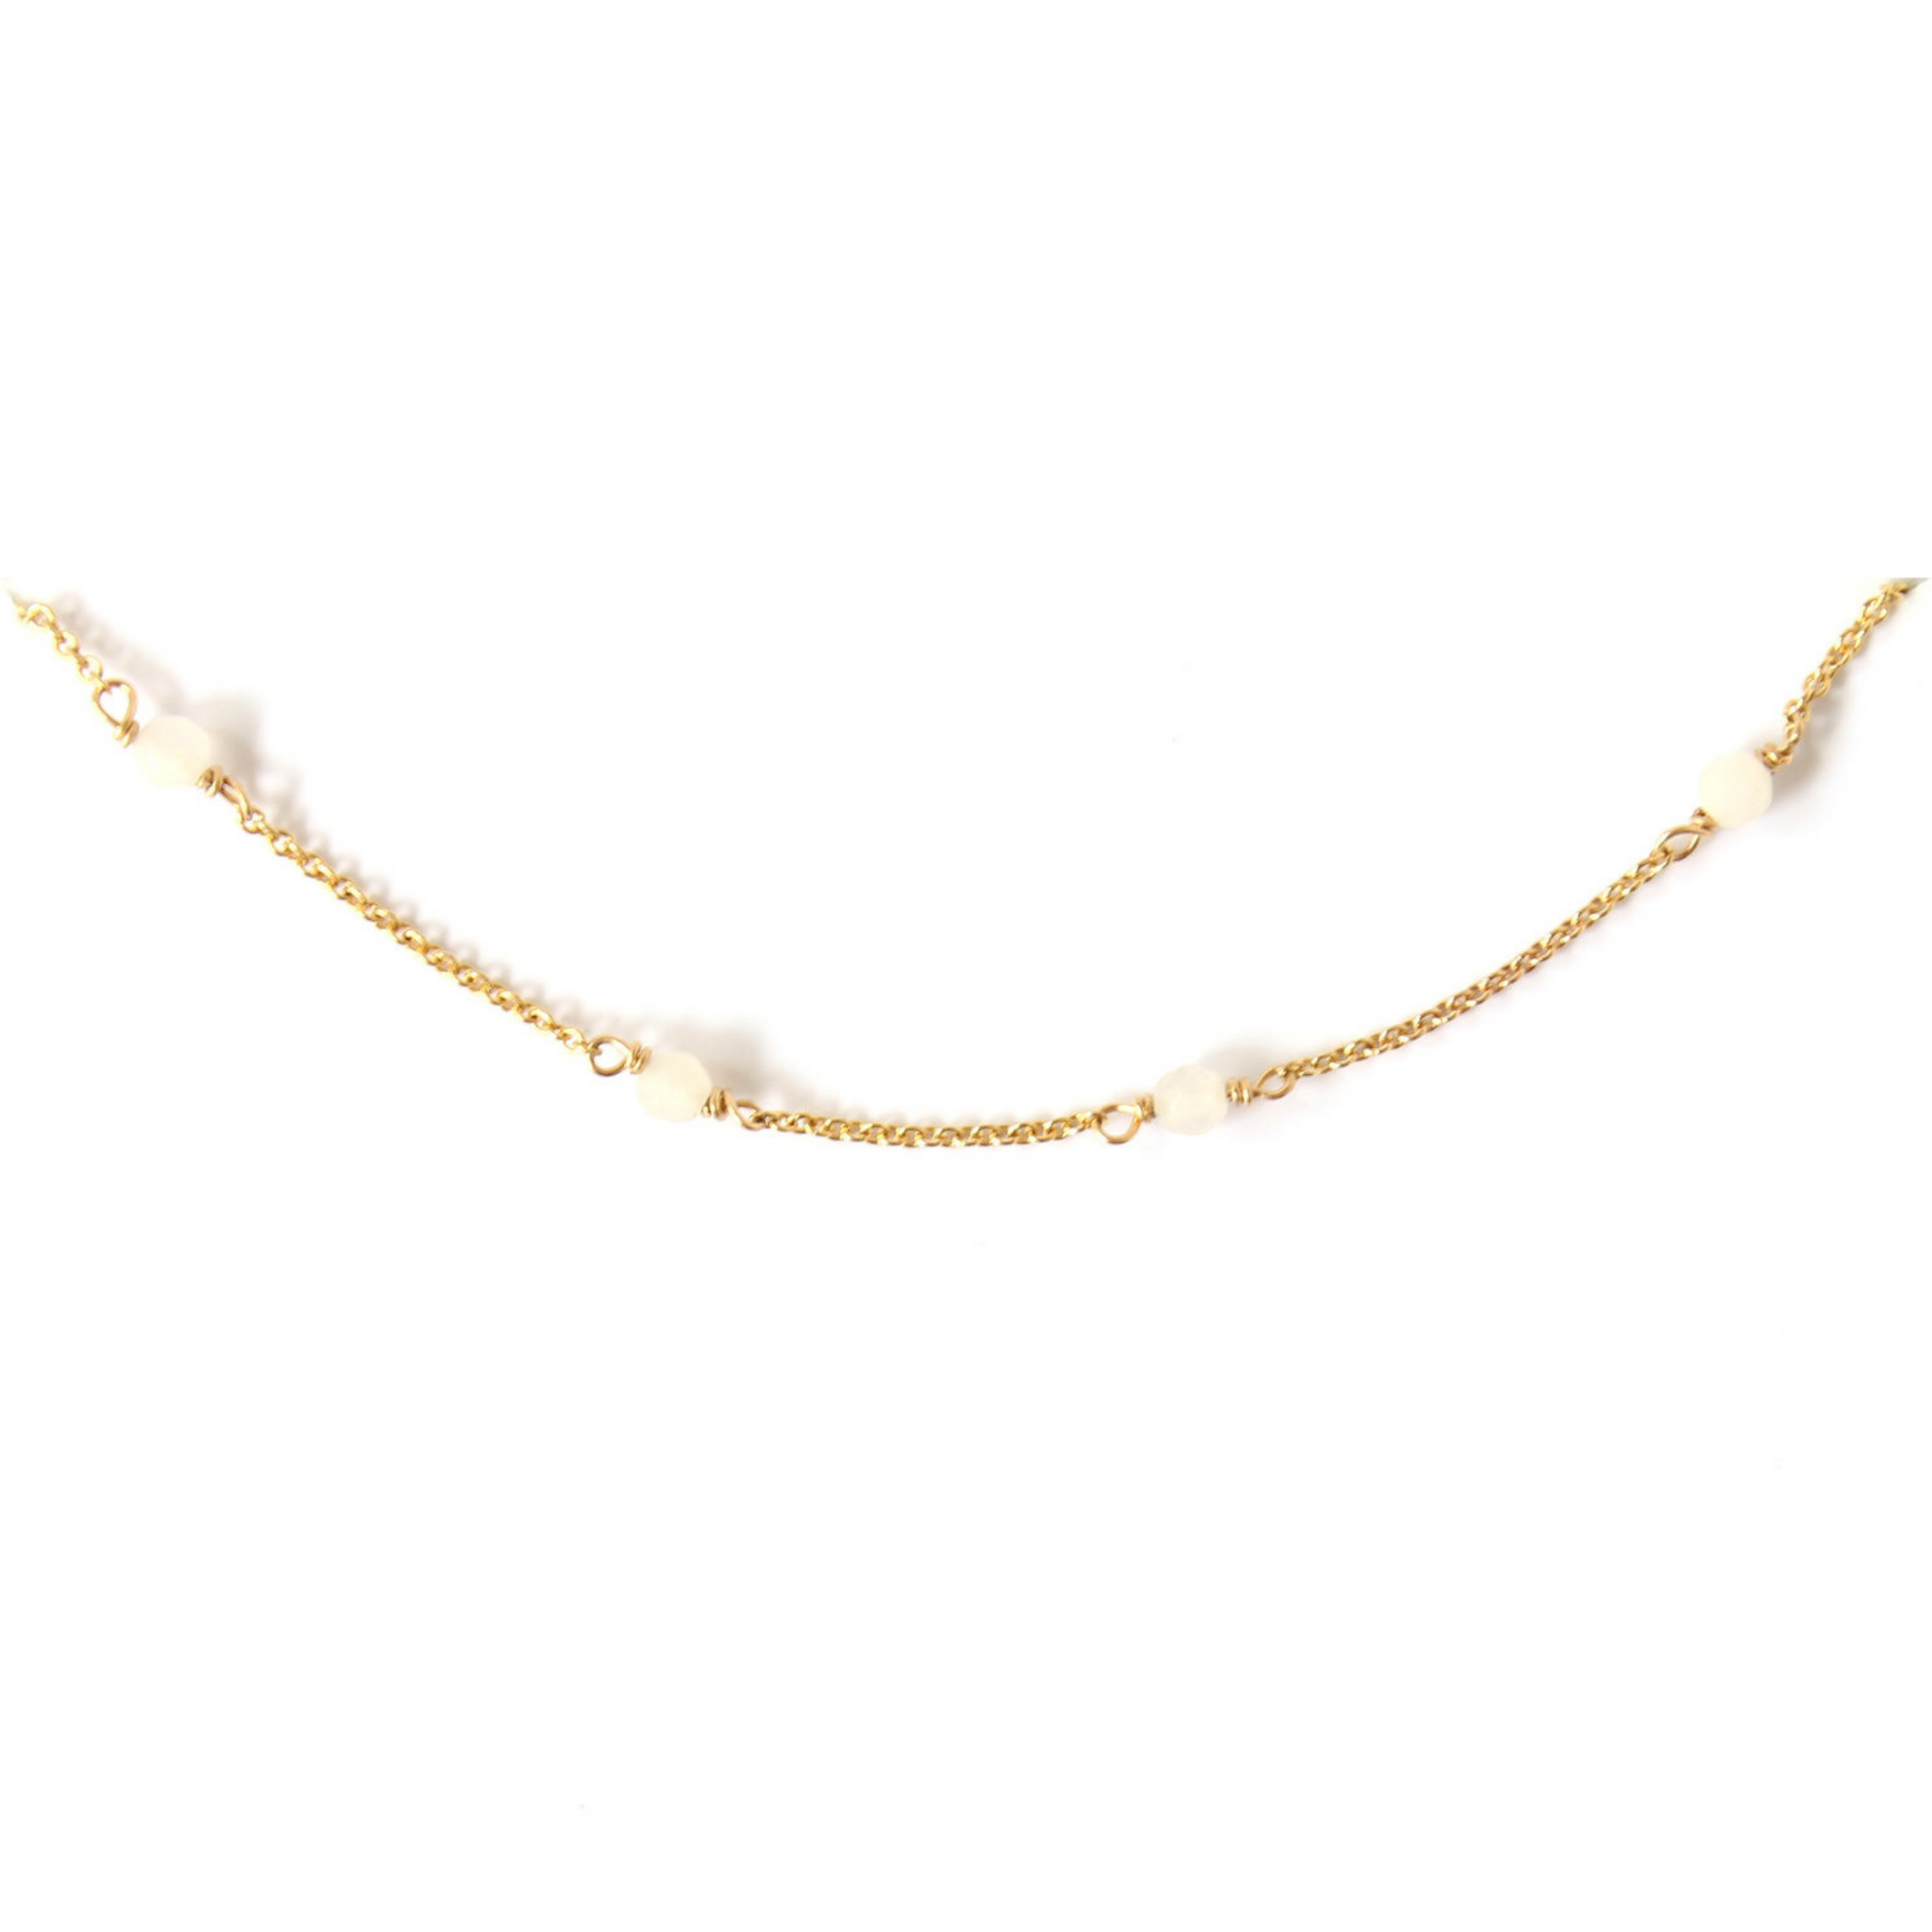 PEACE | WHITE JADE GOLD CHOKER